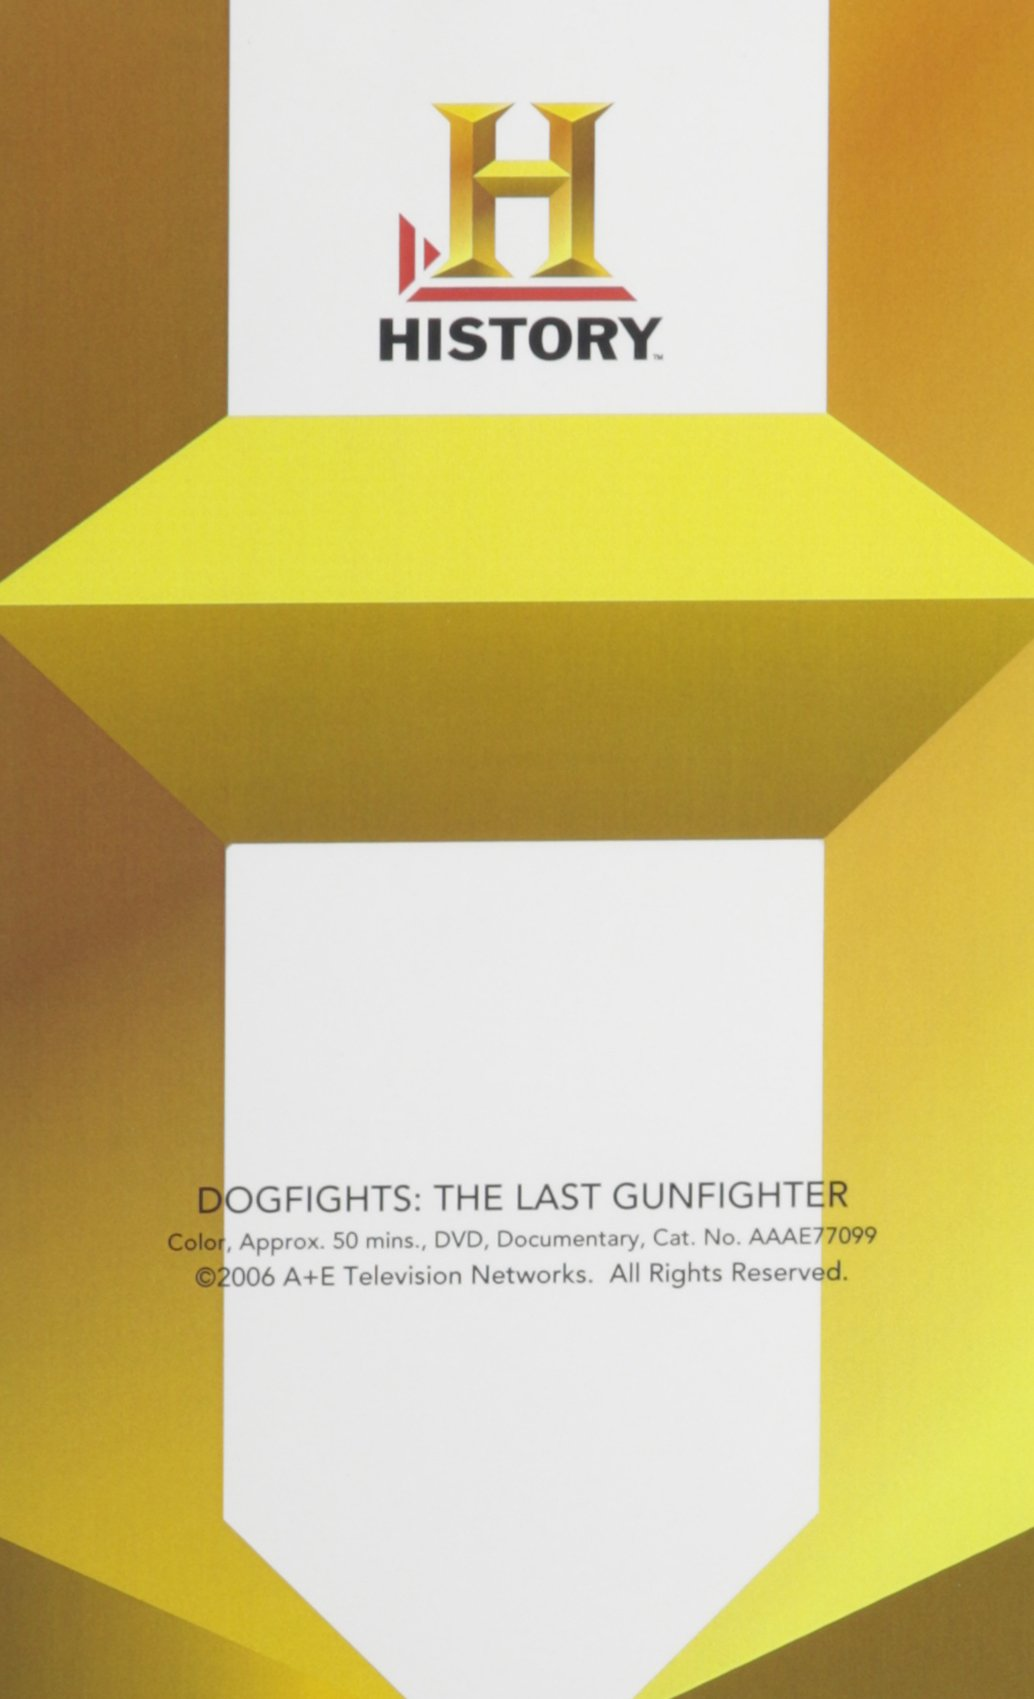 Dogfights: The Last Gunfighter